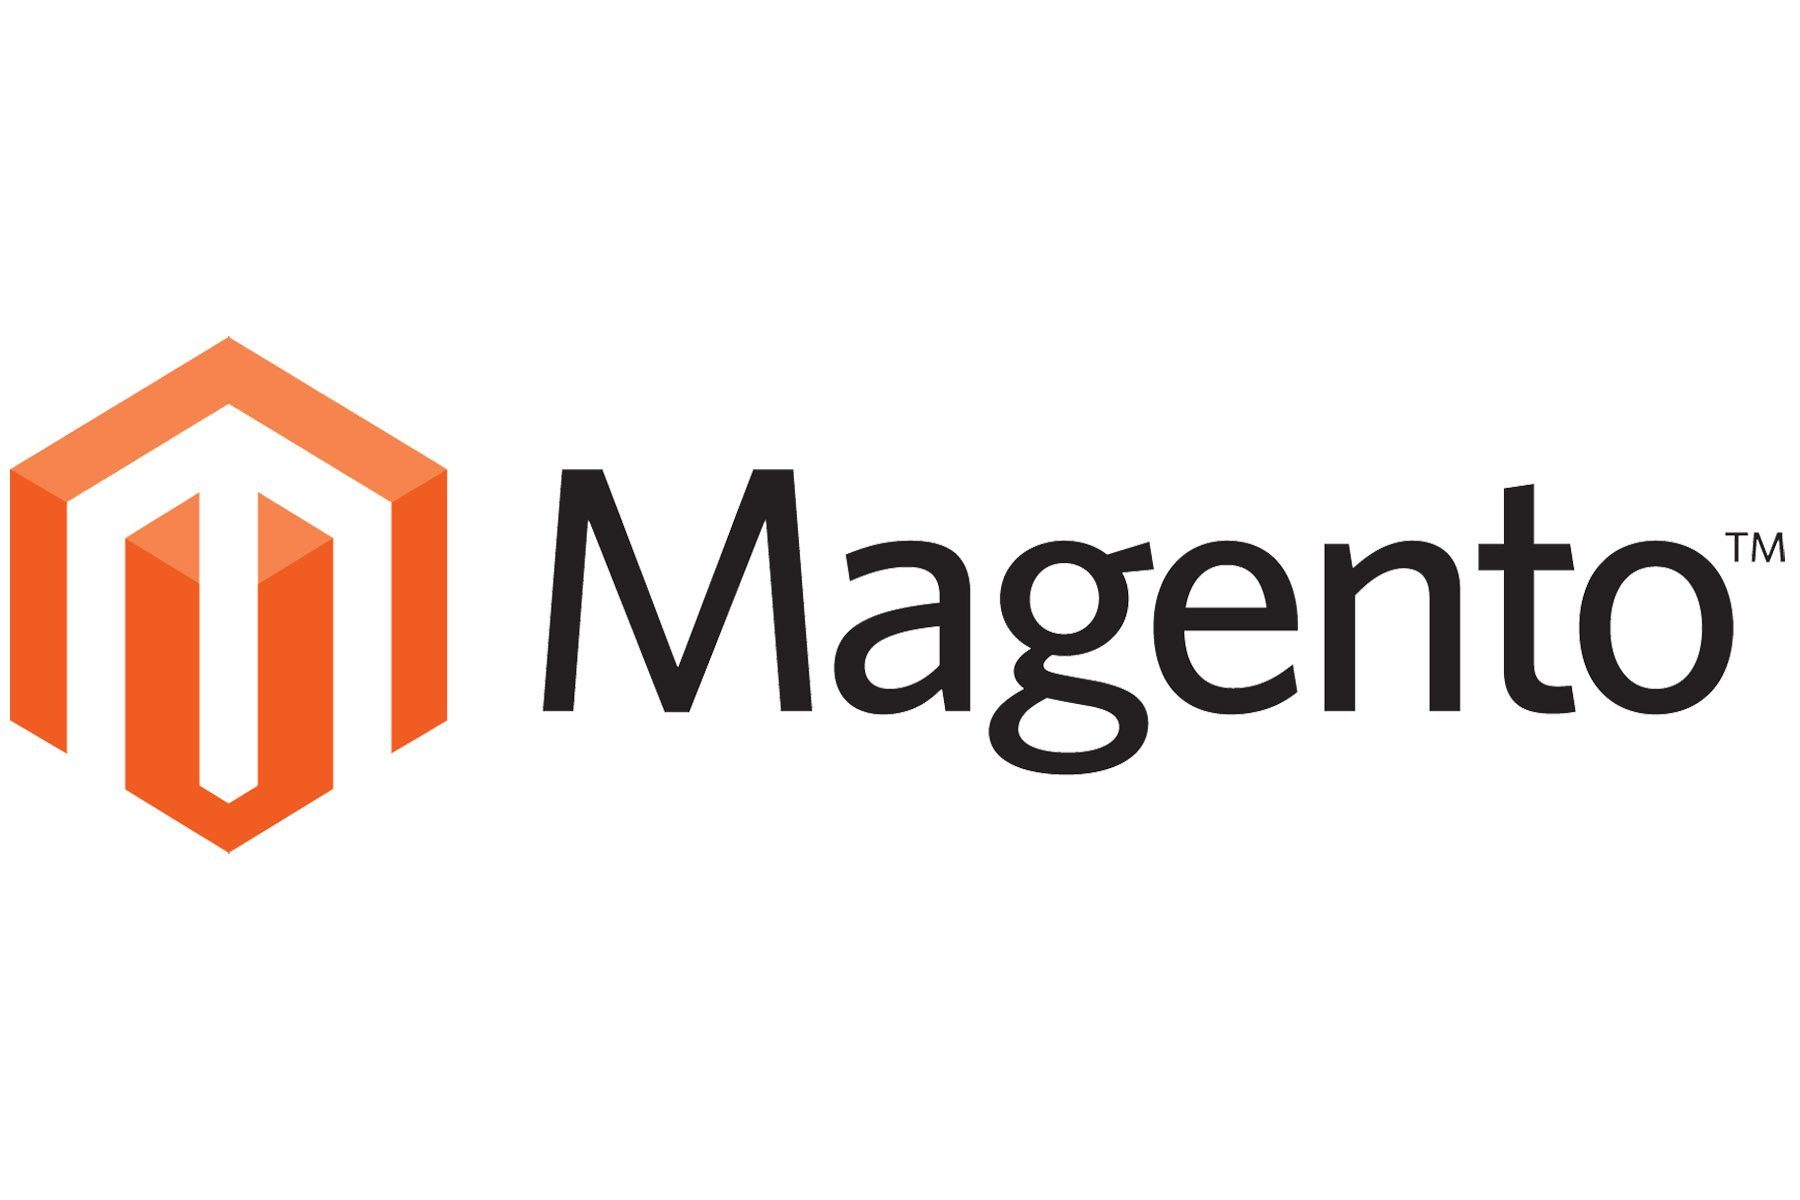 6 ADVANTAGES OF INTEGRATING A MAGENTO BLOG